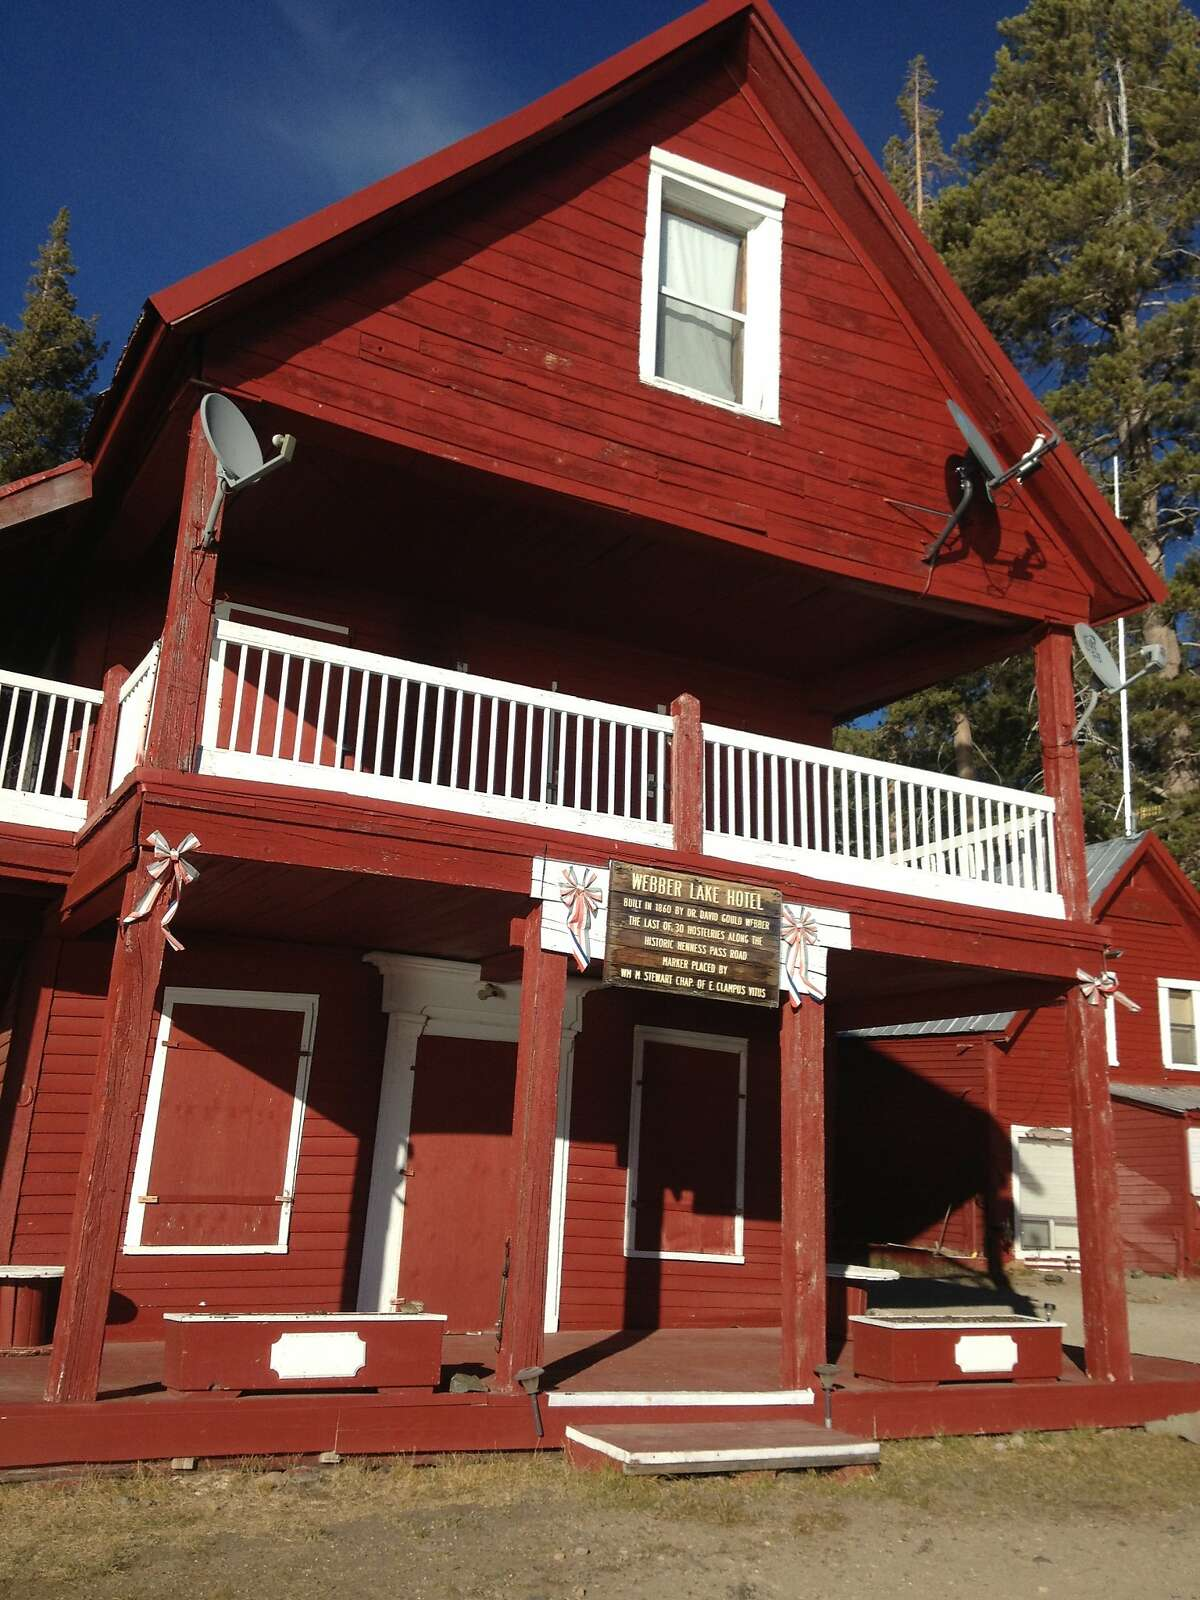 The restored Webber Lake Hotel, built in the 1860s on Webber Lake in the high Sierra north of Truckee -- once a famous destination for tourists arriving by stagecoach and miners by horse